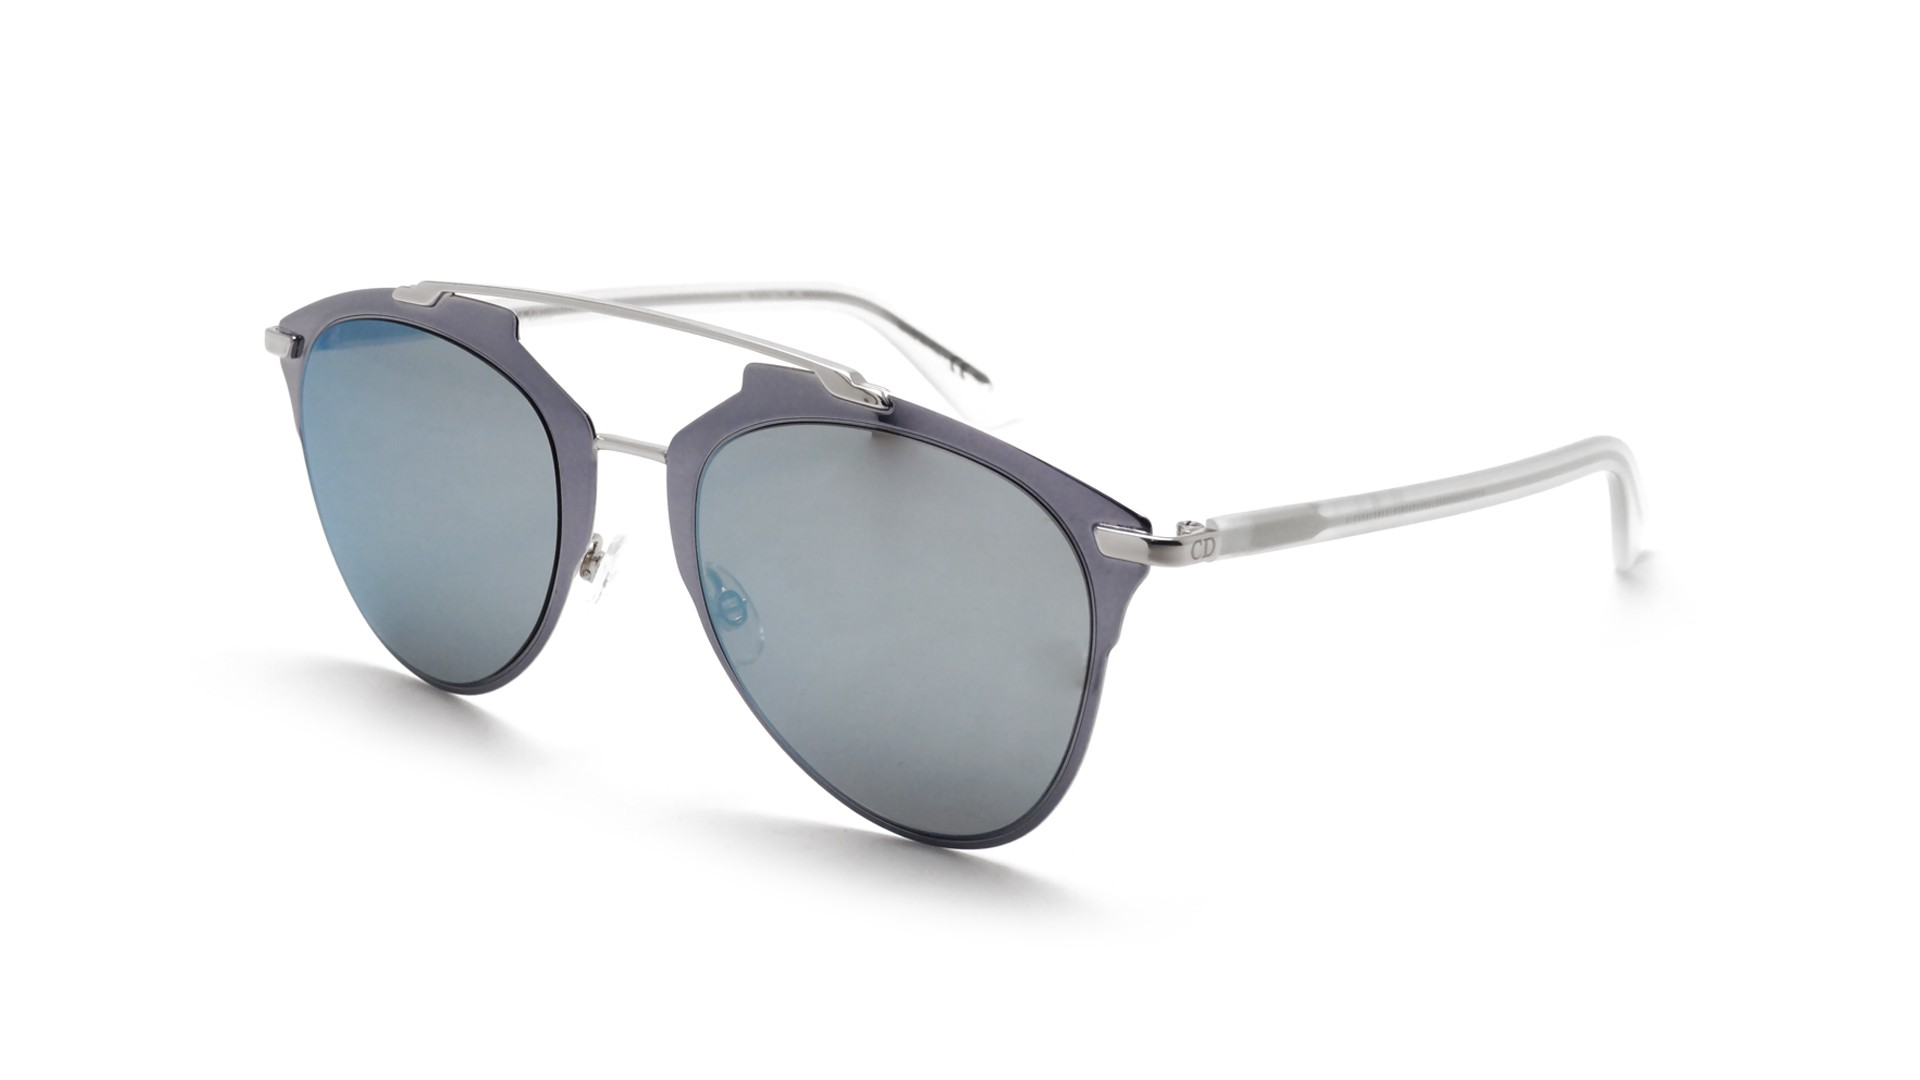 45f8acdfee439c Lunettes de soleil Dior Reflected Bleu REFLECTED P3RT7 52-21 Medium Miroirs